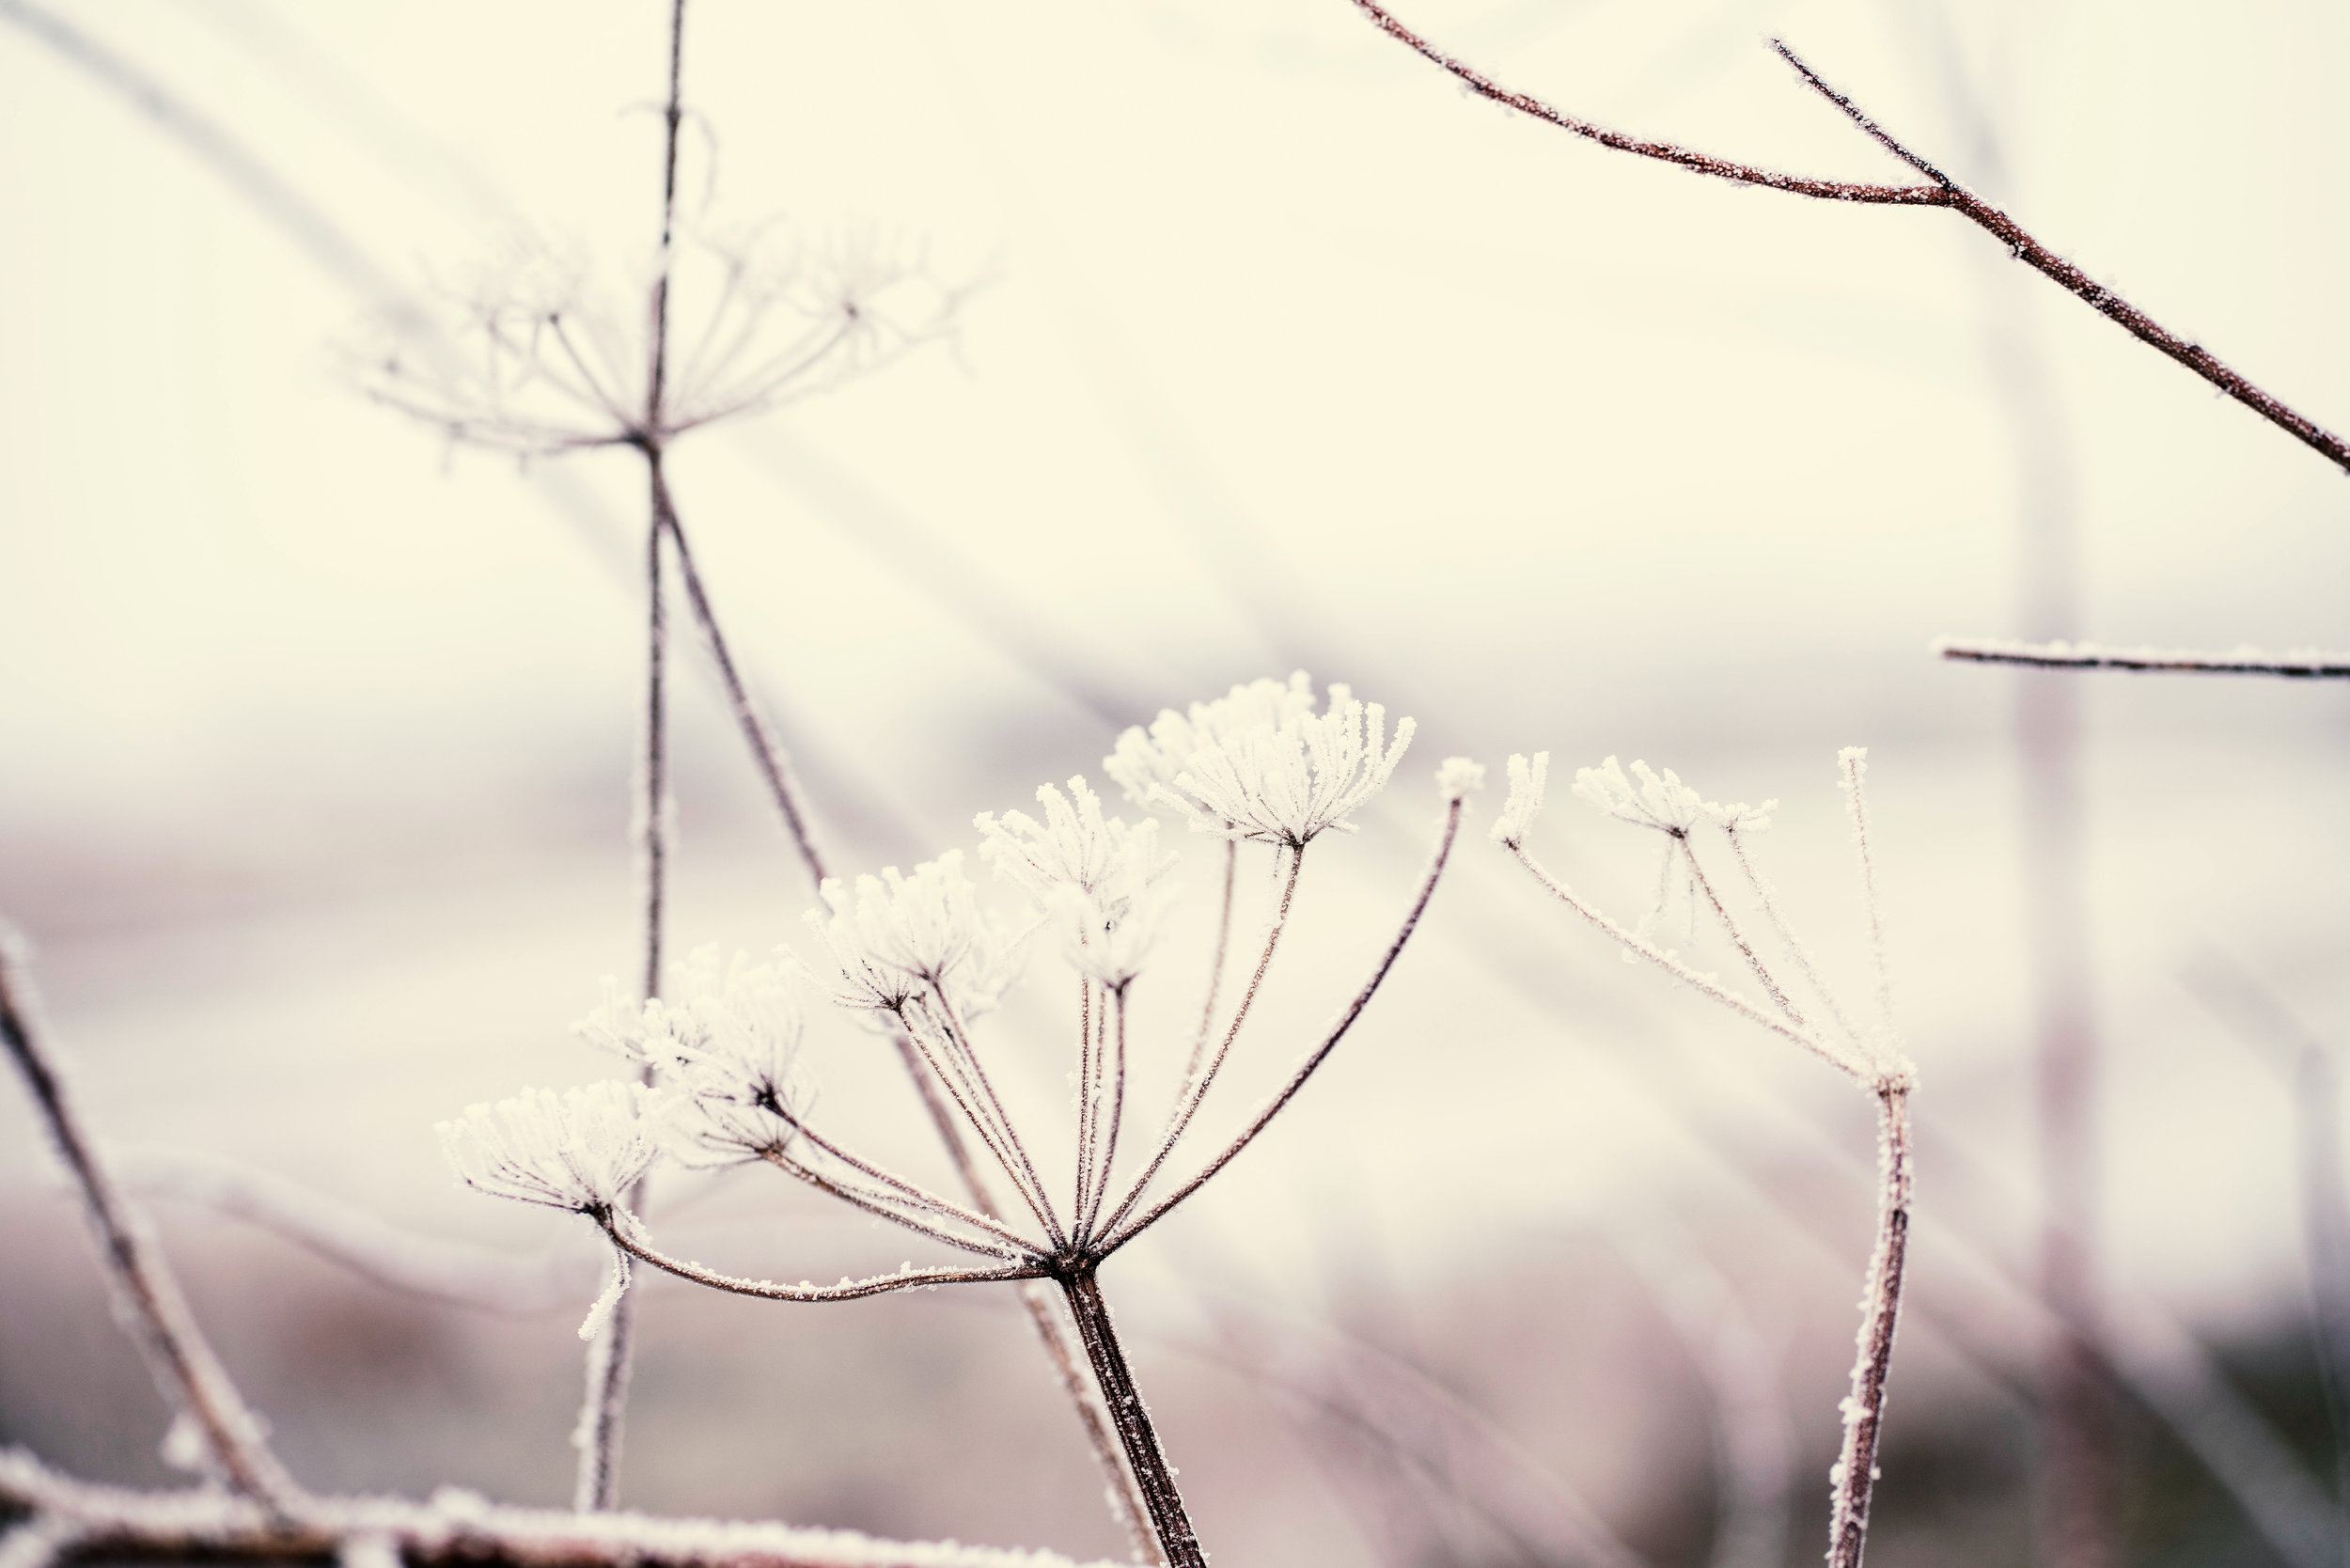 Macro shot of icy plants